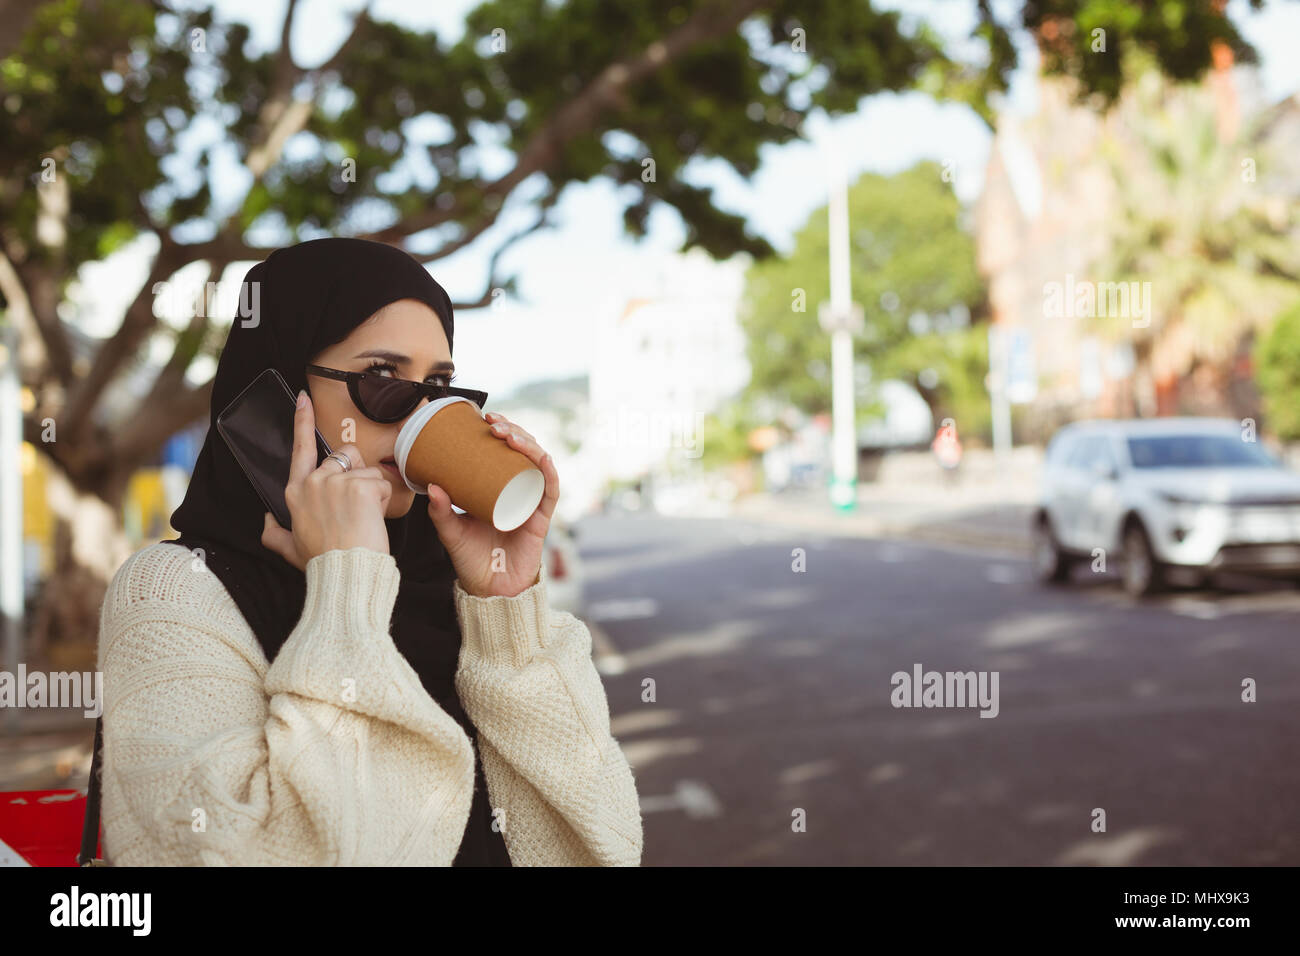 Hijab woman talking on mobile phone while having coffee at pavement cafe - Stock Image